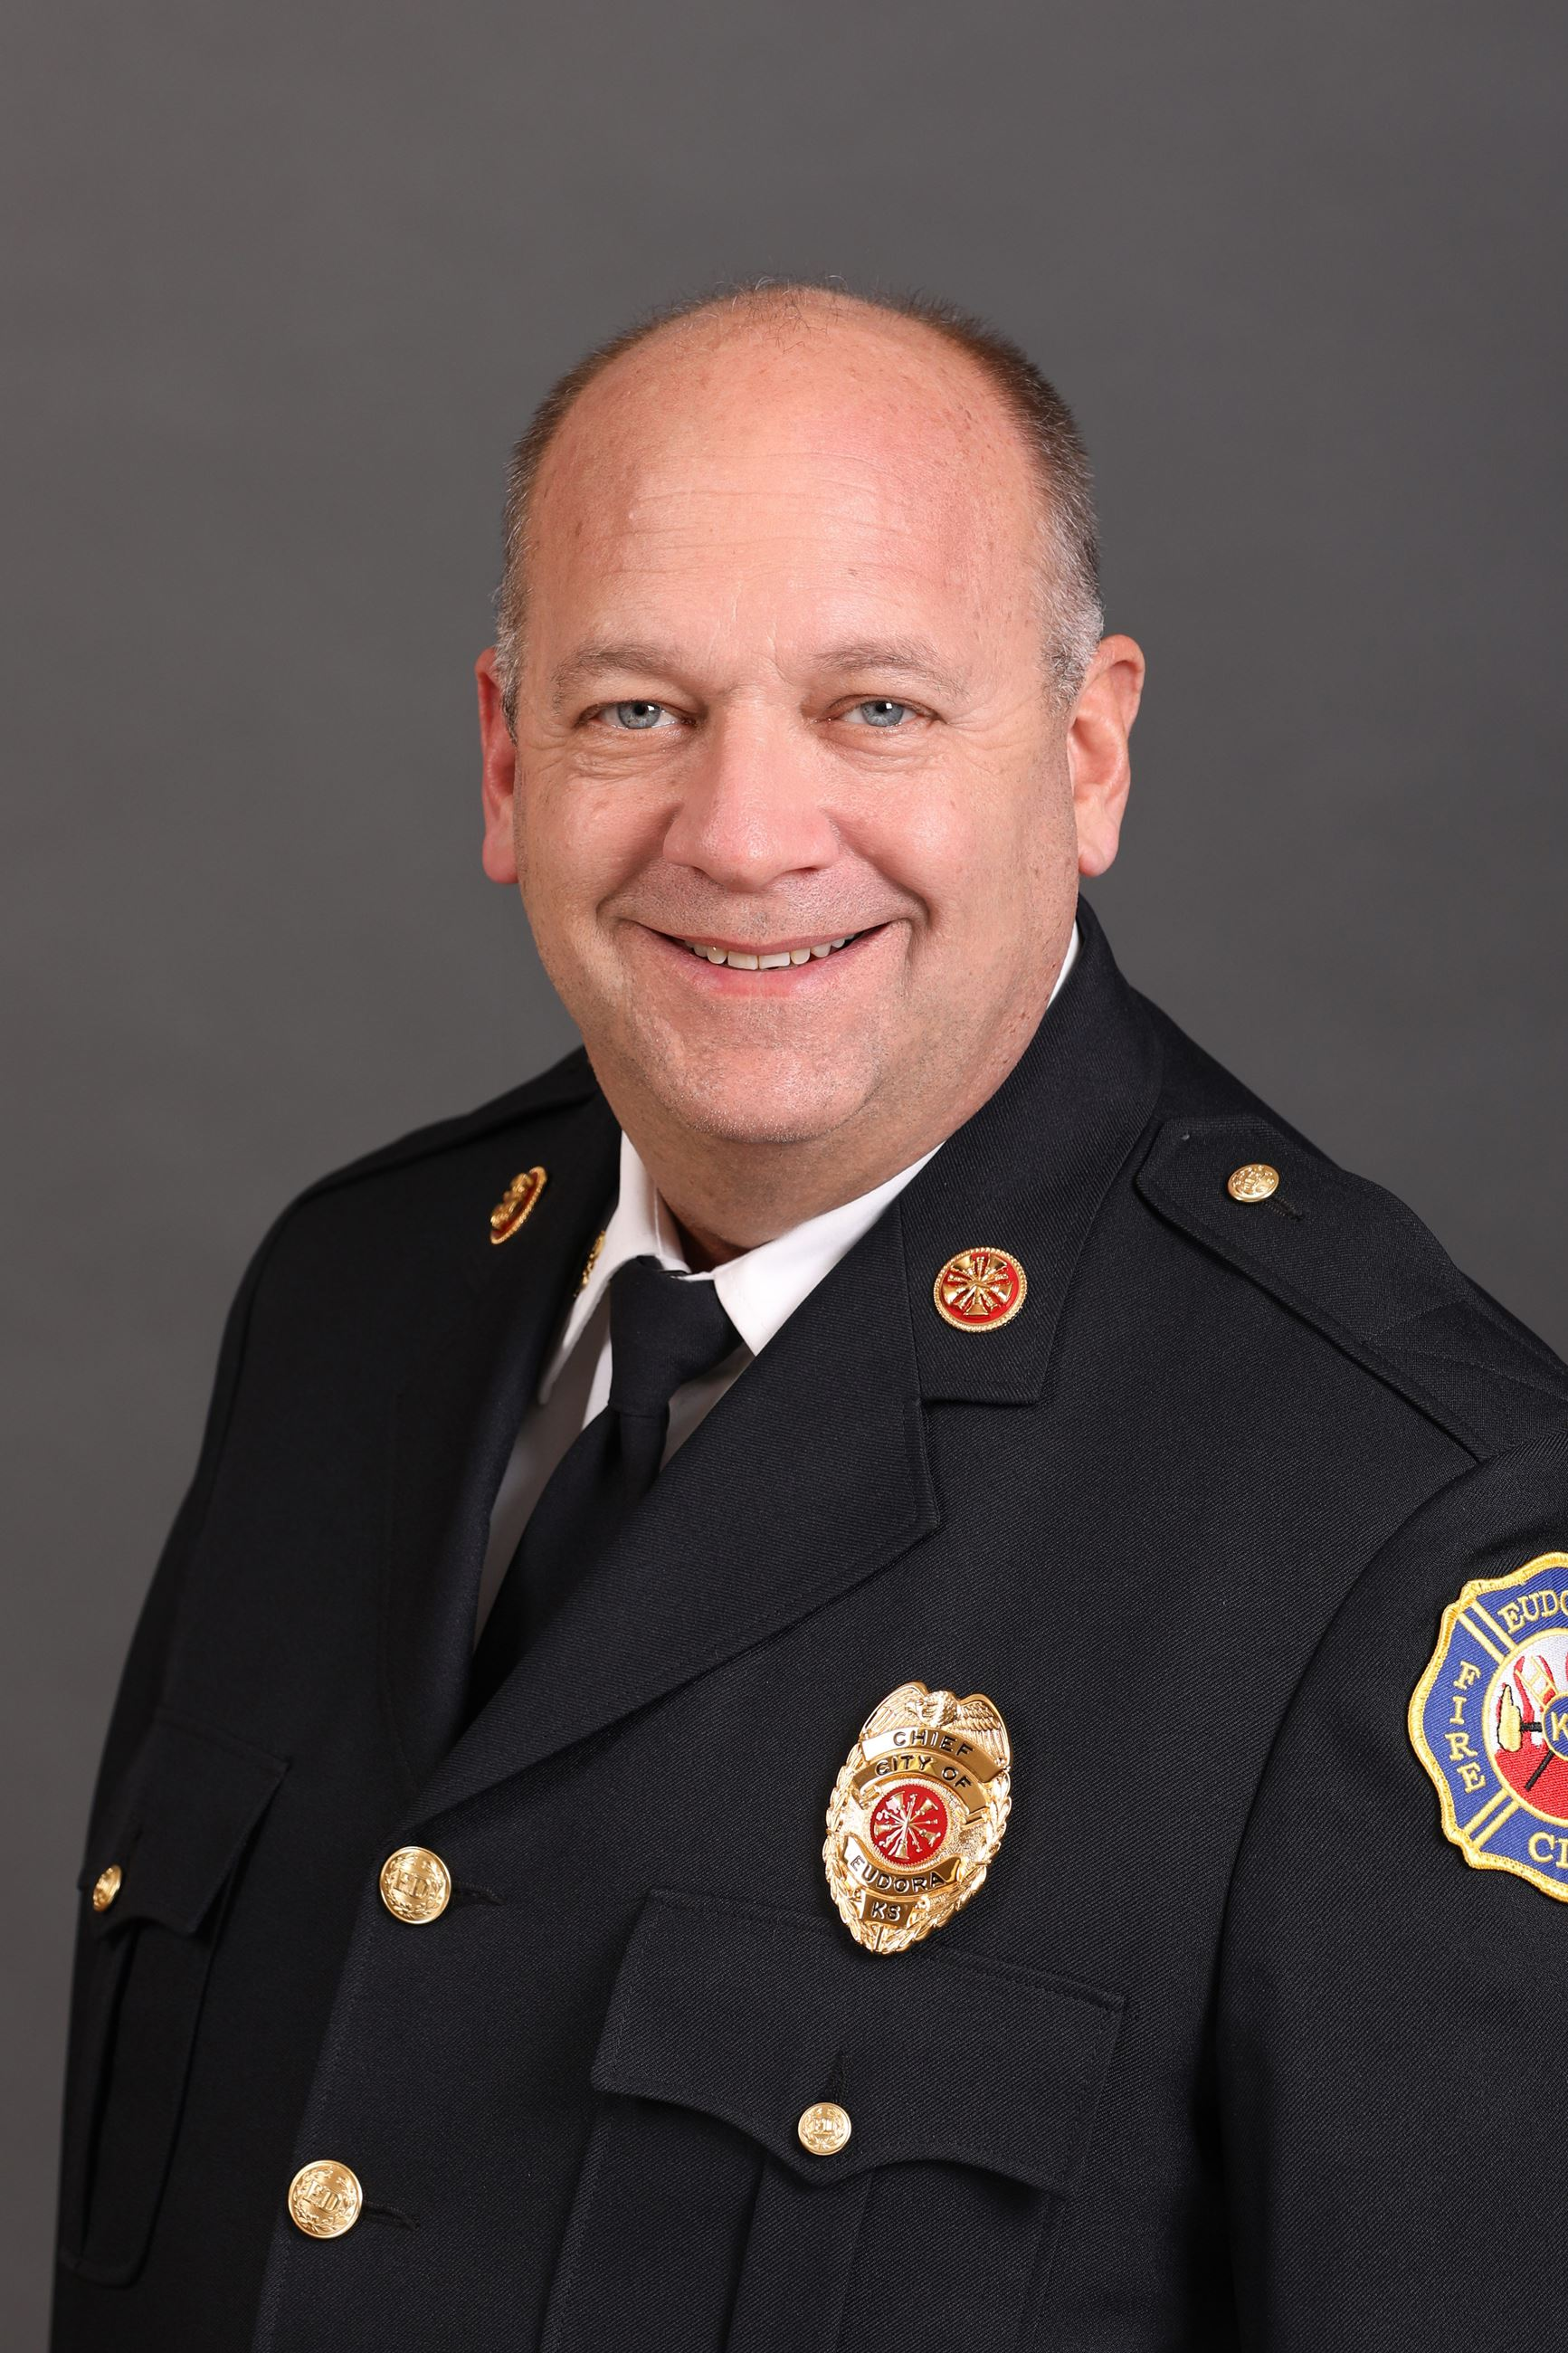 Ken Keiter Fire Chief